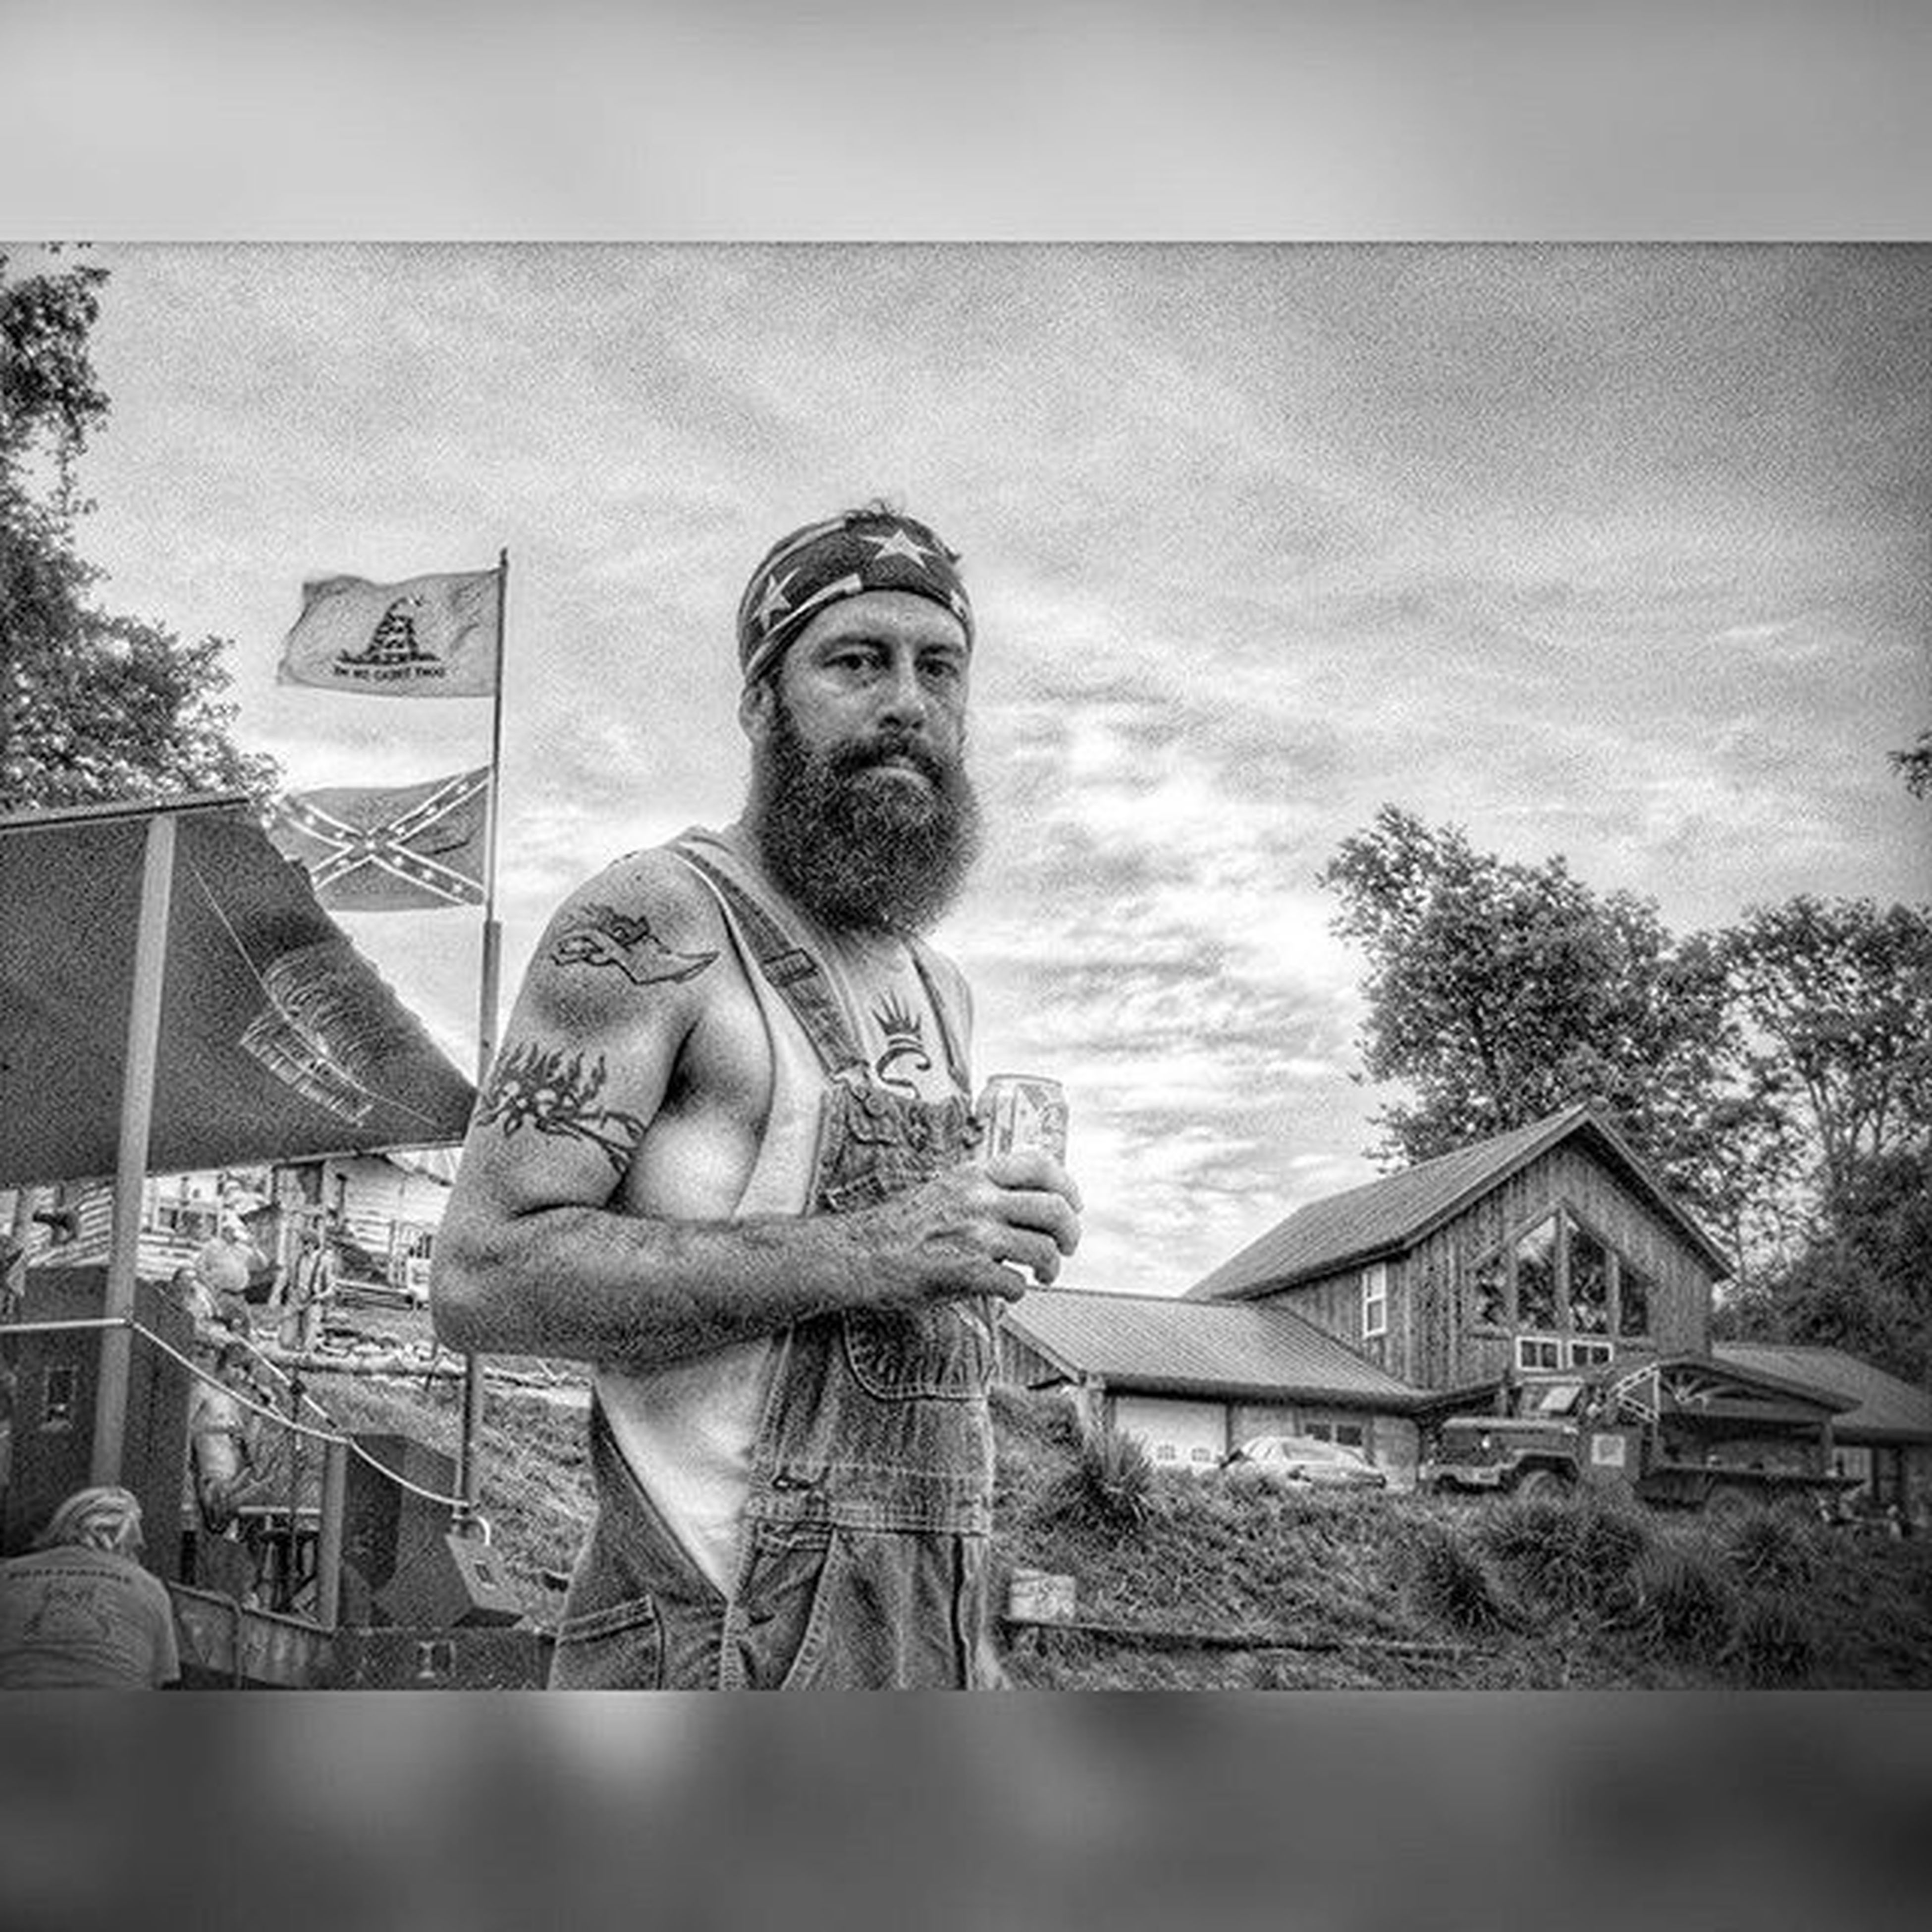 Country boys can survive.... Sry just heard that song and remembered this pic of a buddy at party while back........ Ks_pride Party Countryparty Wow_america_bnw Wow_hdr Bnw Bnw_life Bnw_globe Bnw_kansas Kansasphotos Kansasphotographer Blancoynegro Summerparty2015 Doniphandays2015 Fuckyeah